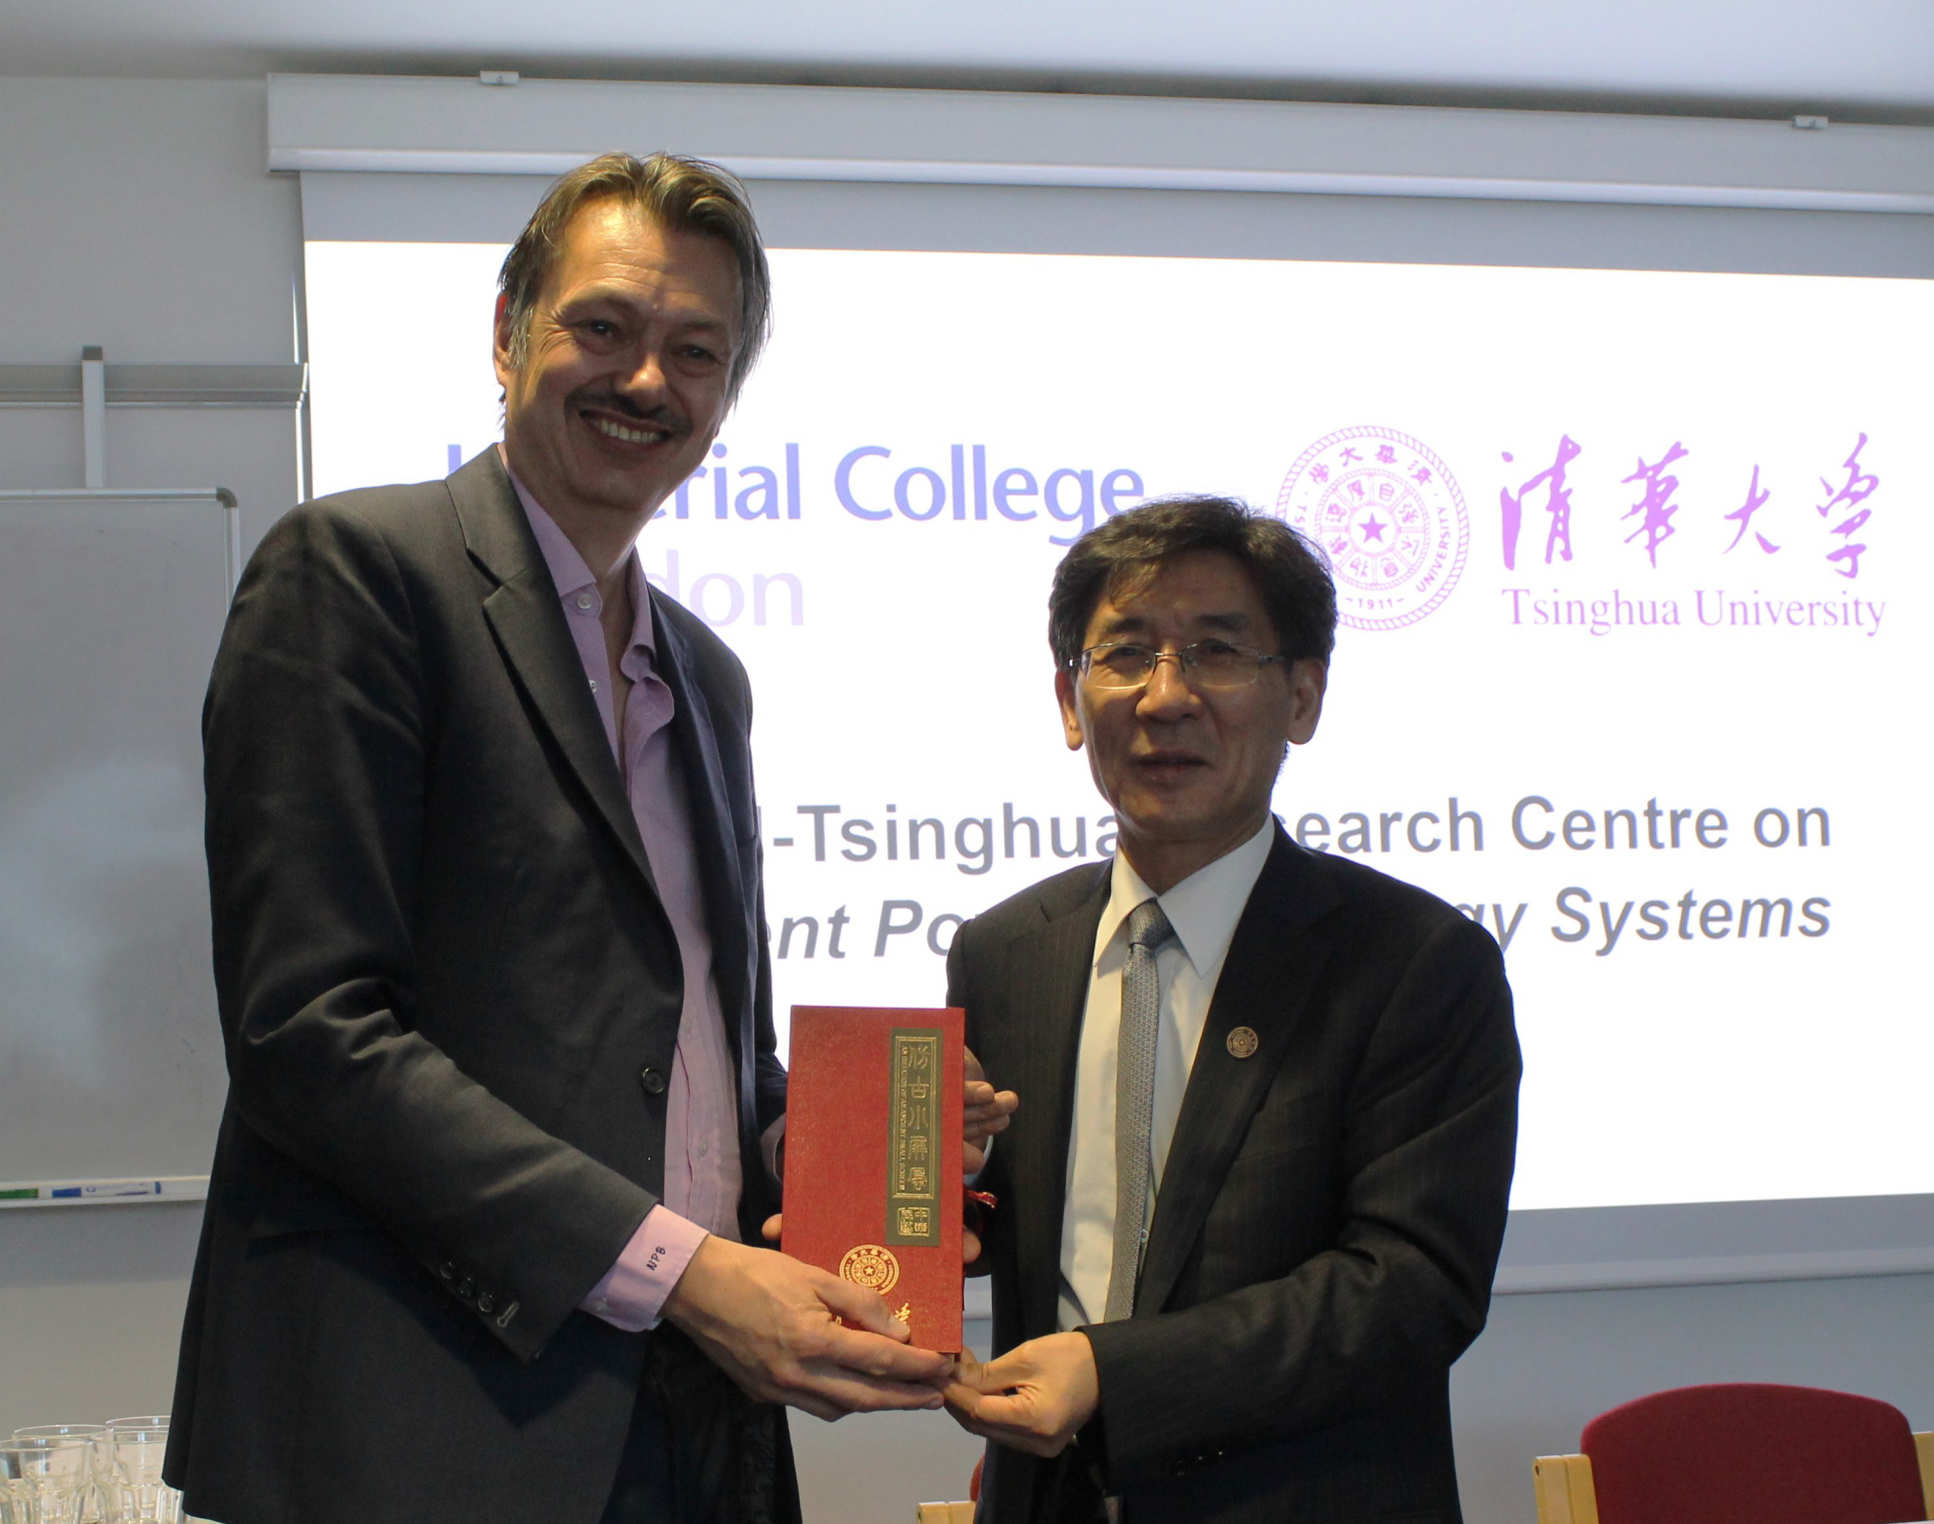 Professor Nigel Brandon, Dean of Engineering, Imperial College London, and  Vice President Qikun Xue, Vice President for Research, Tsinghua University